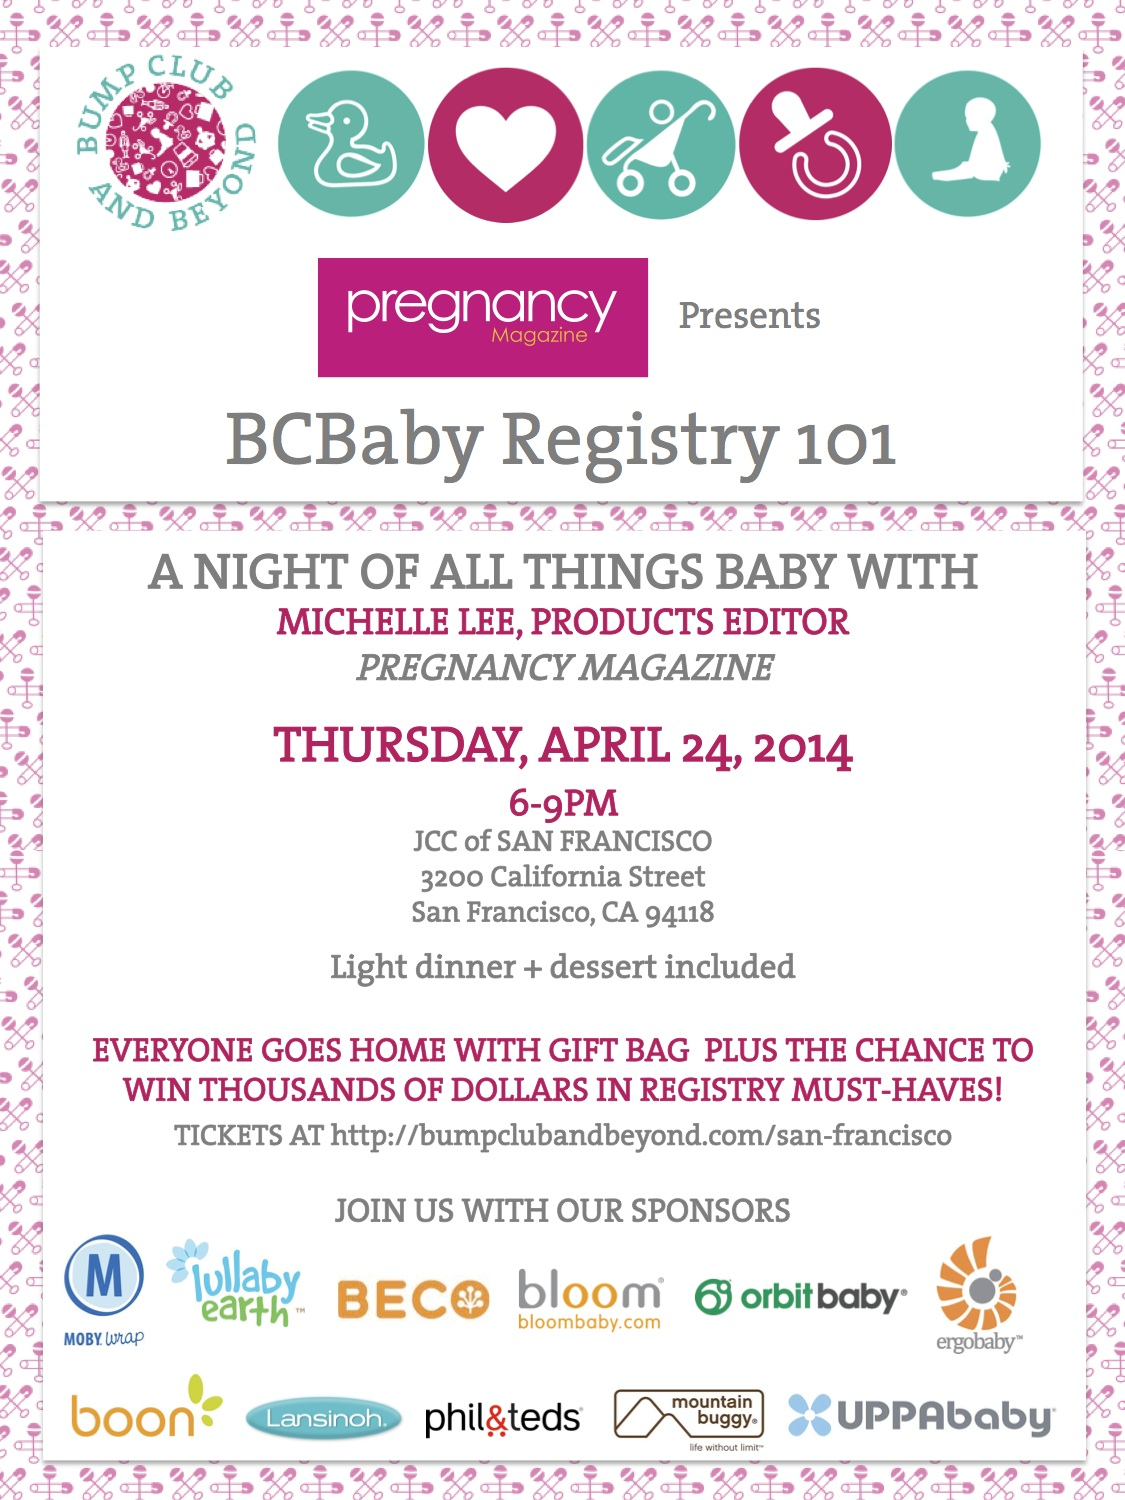 Pregnancy Magazine Invite 2014